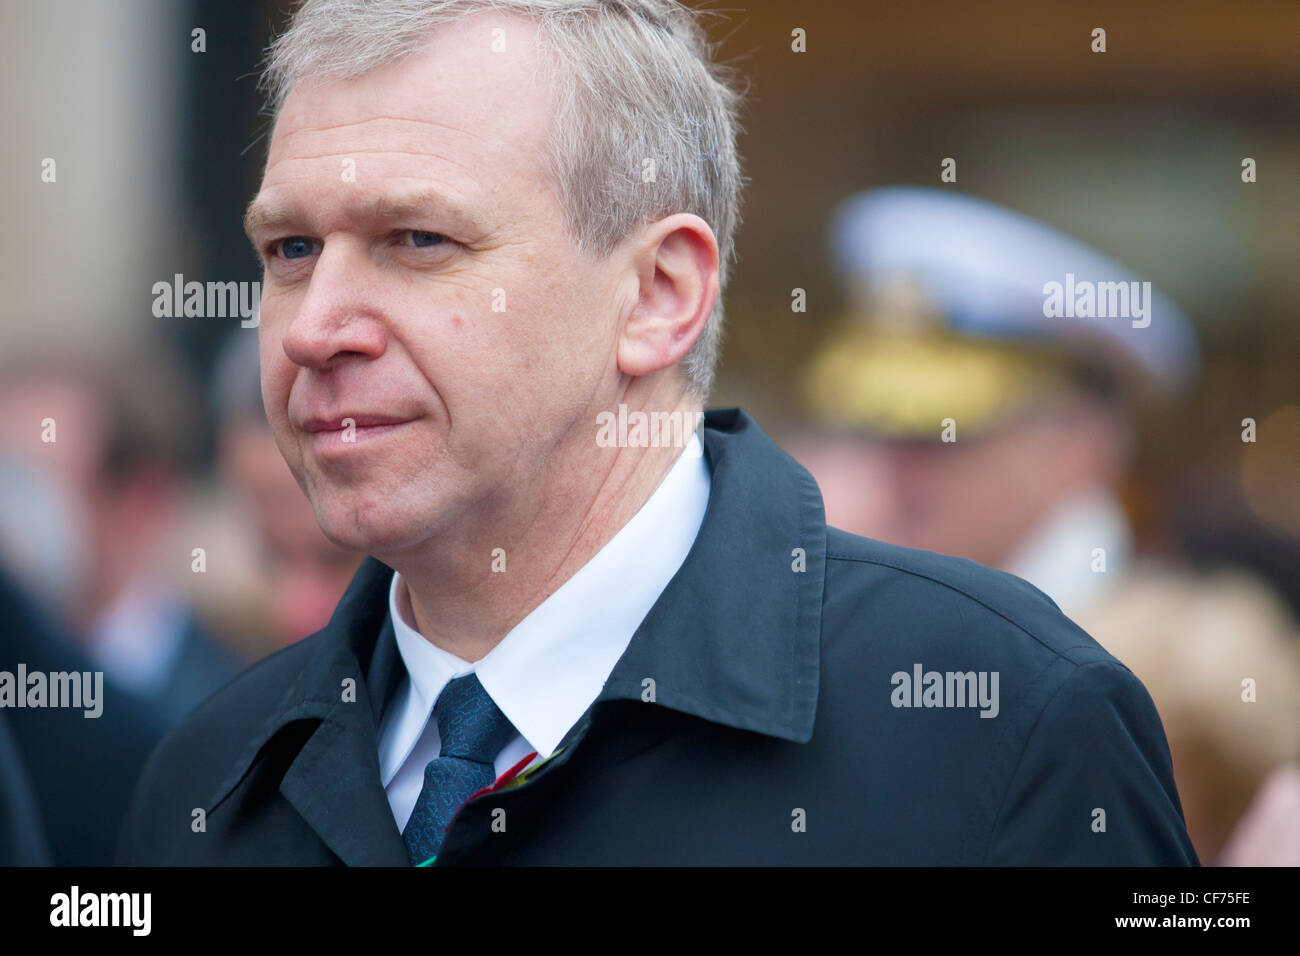 Mr. Yves Leterme at the 11 November 2011 remembrance in Ypres. Then he was prime minister Belgium - Stock Image